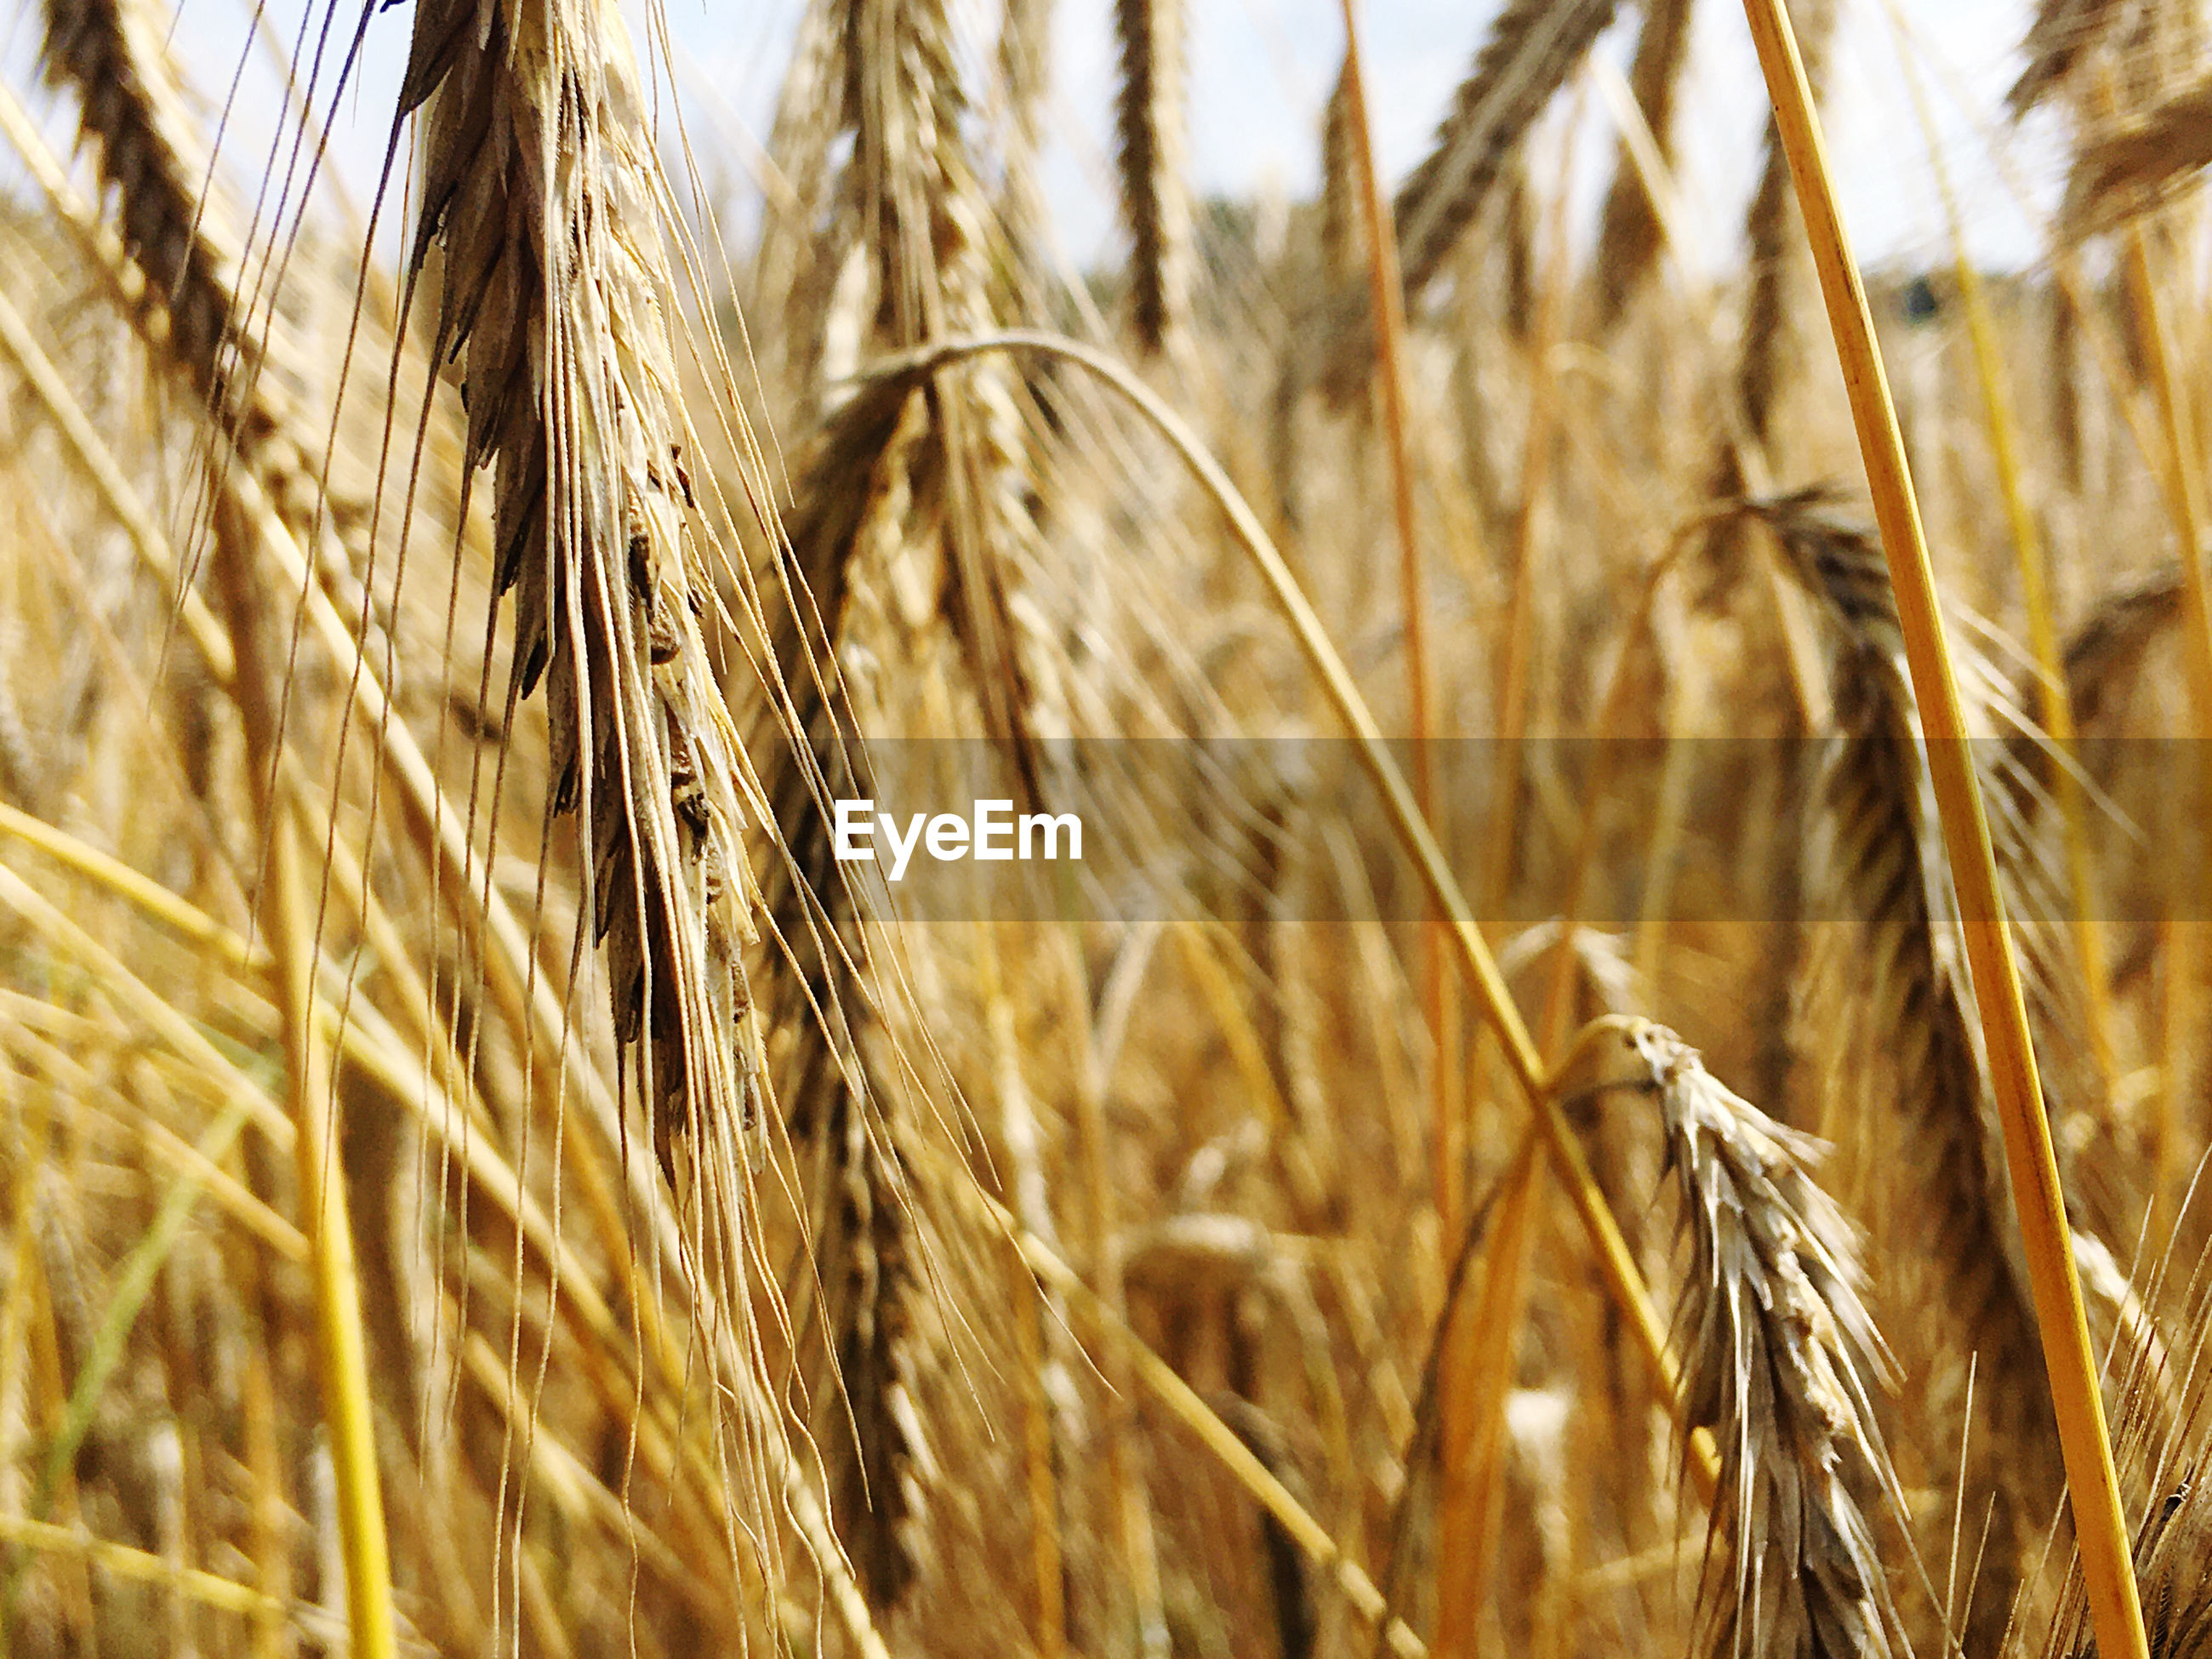 Close-up of grain growing on field